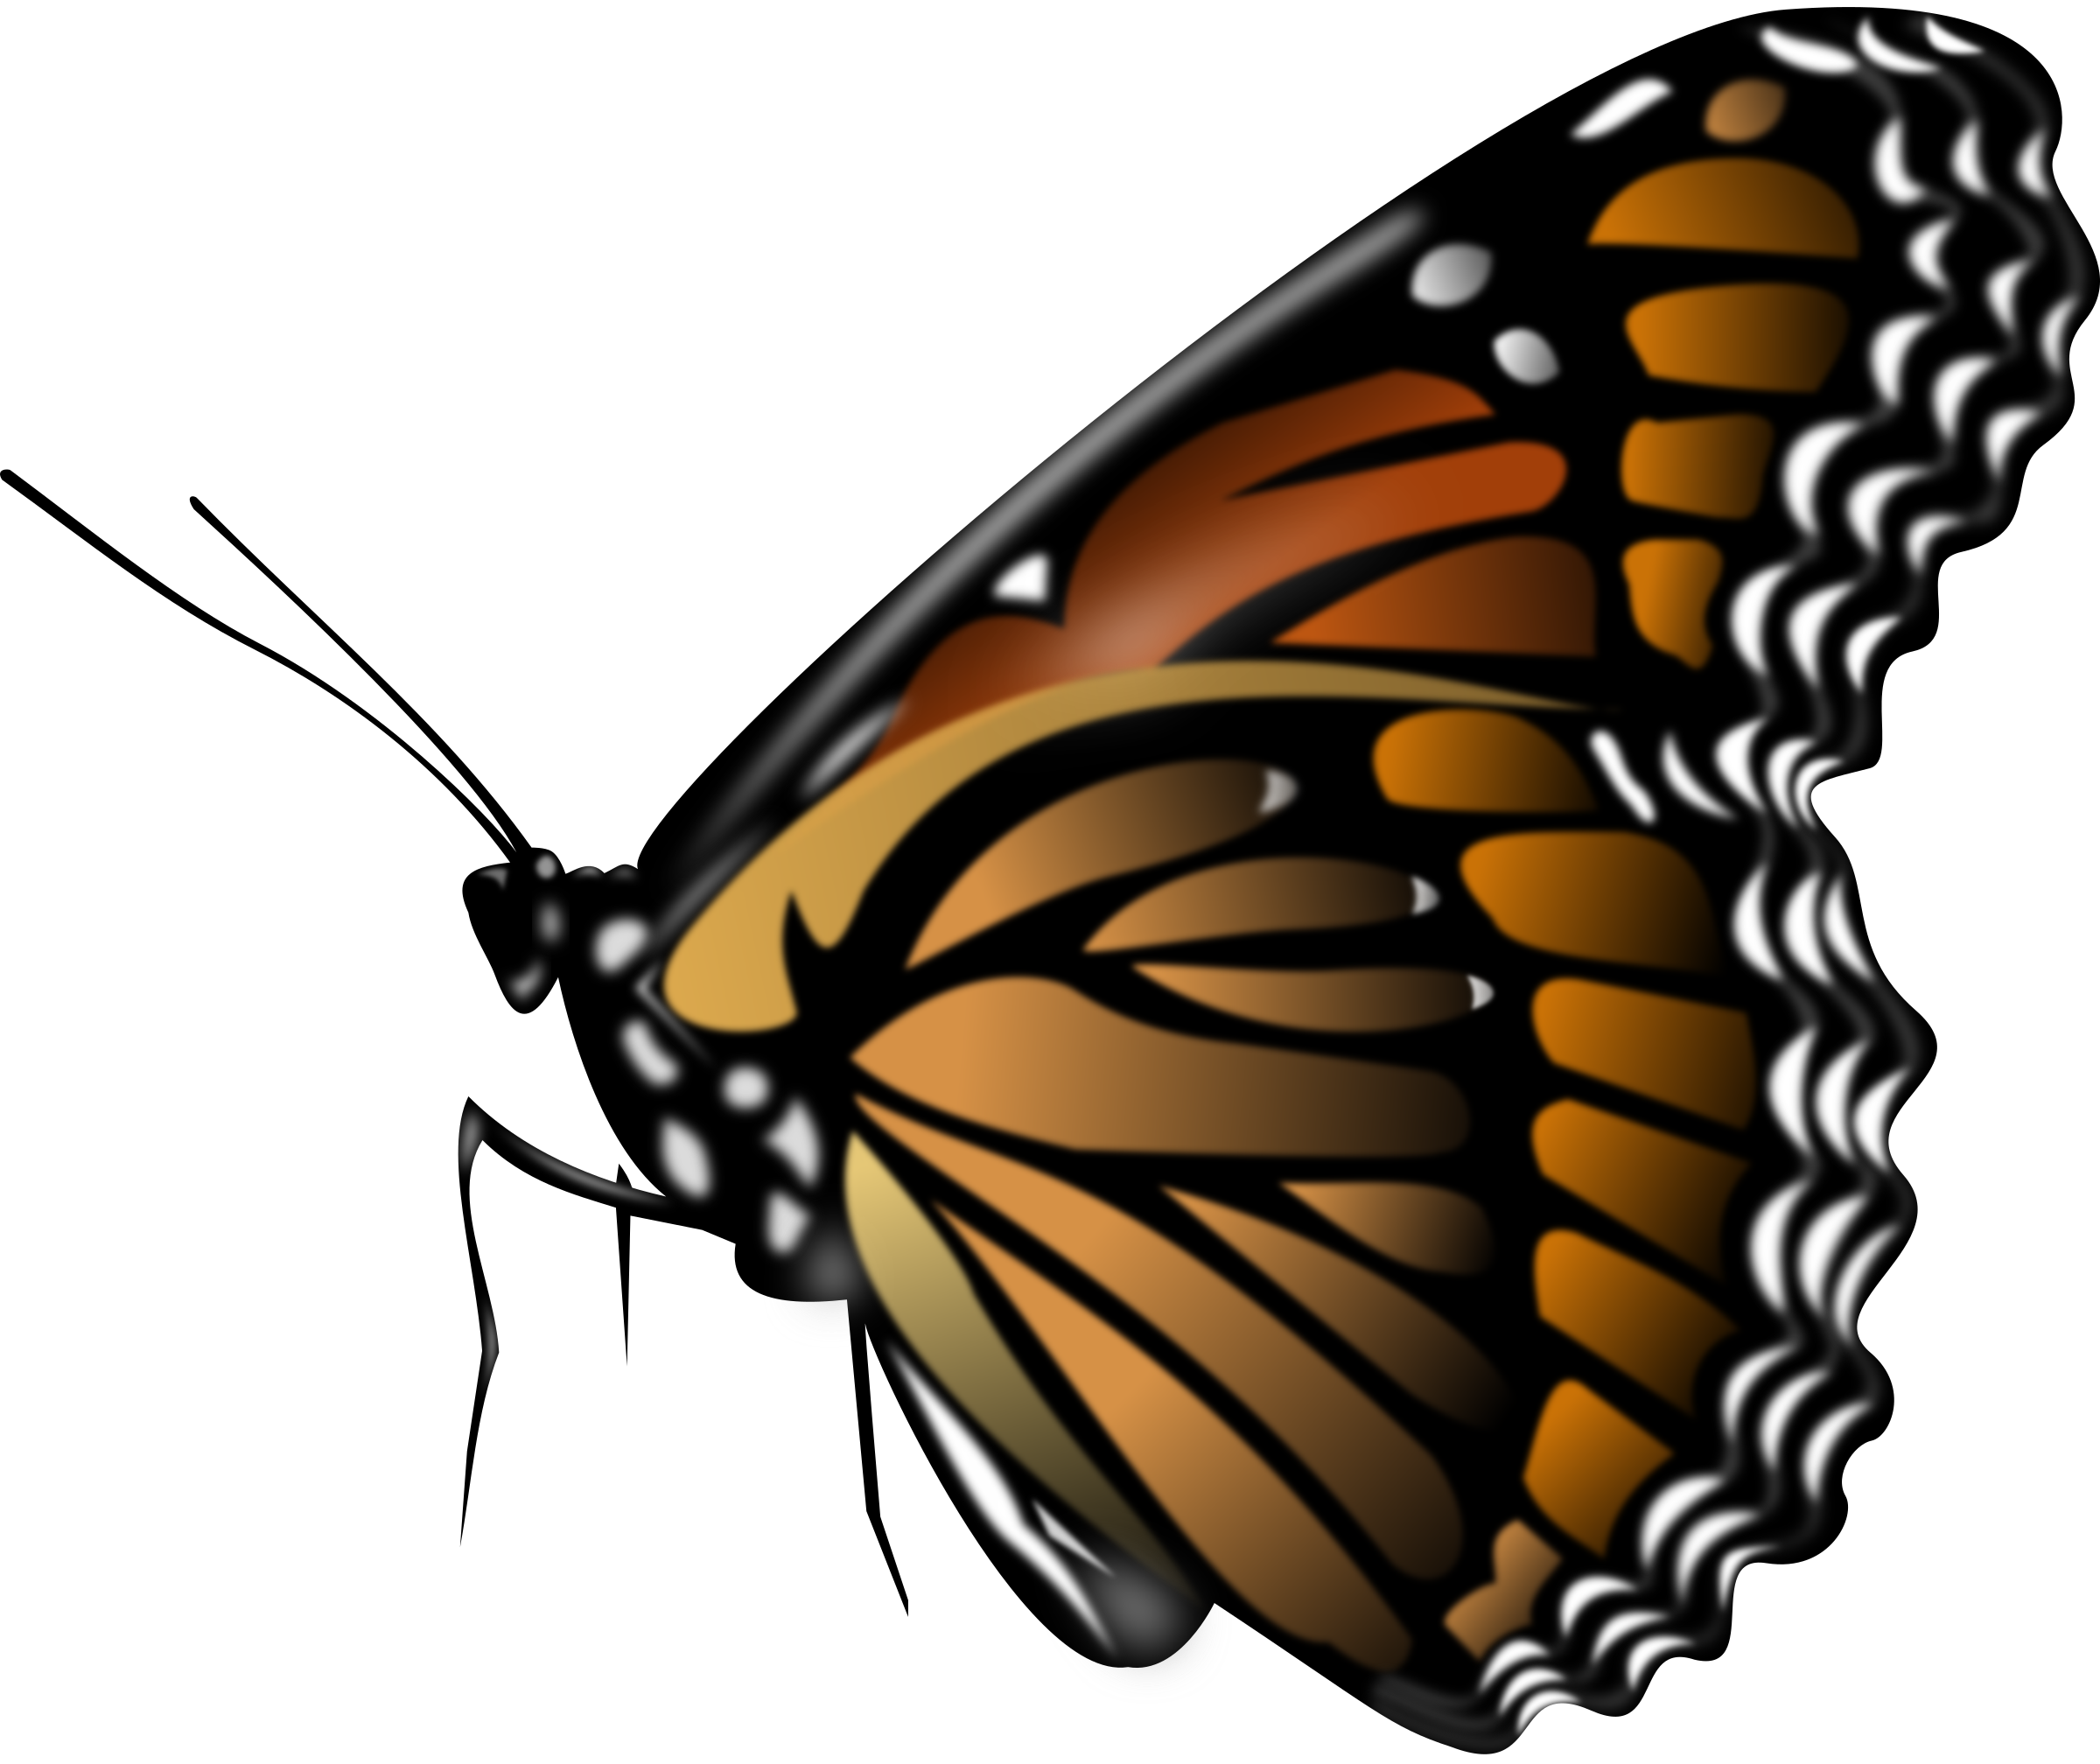 svg black and white download Butterfly. Monarch clipart.